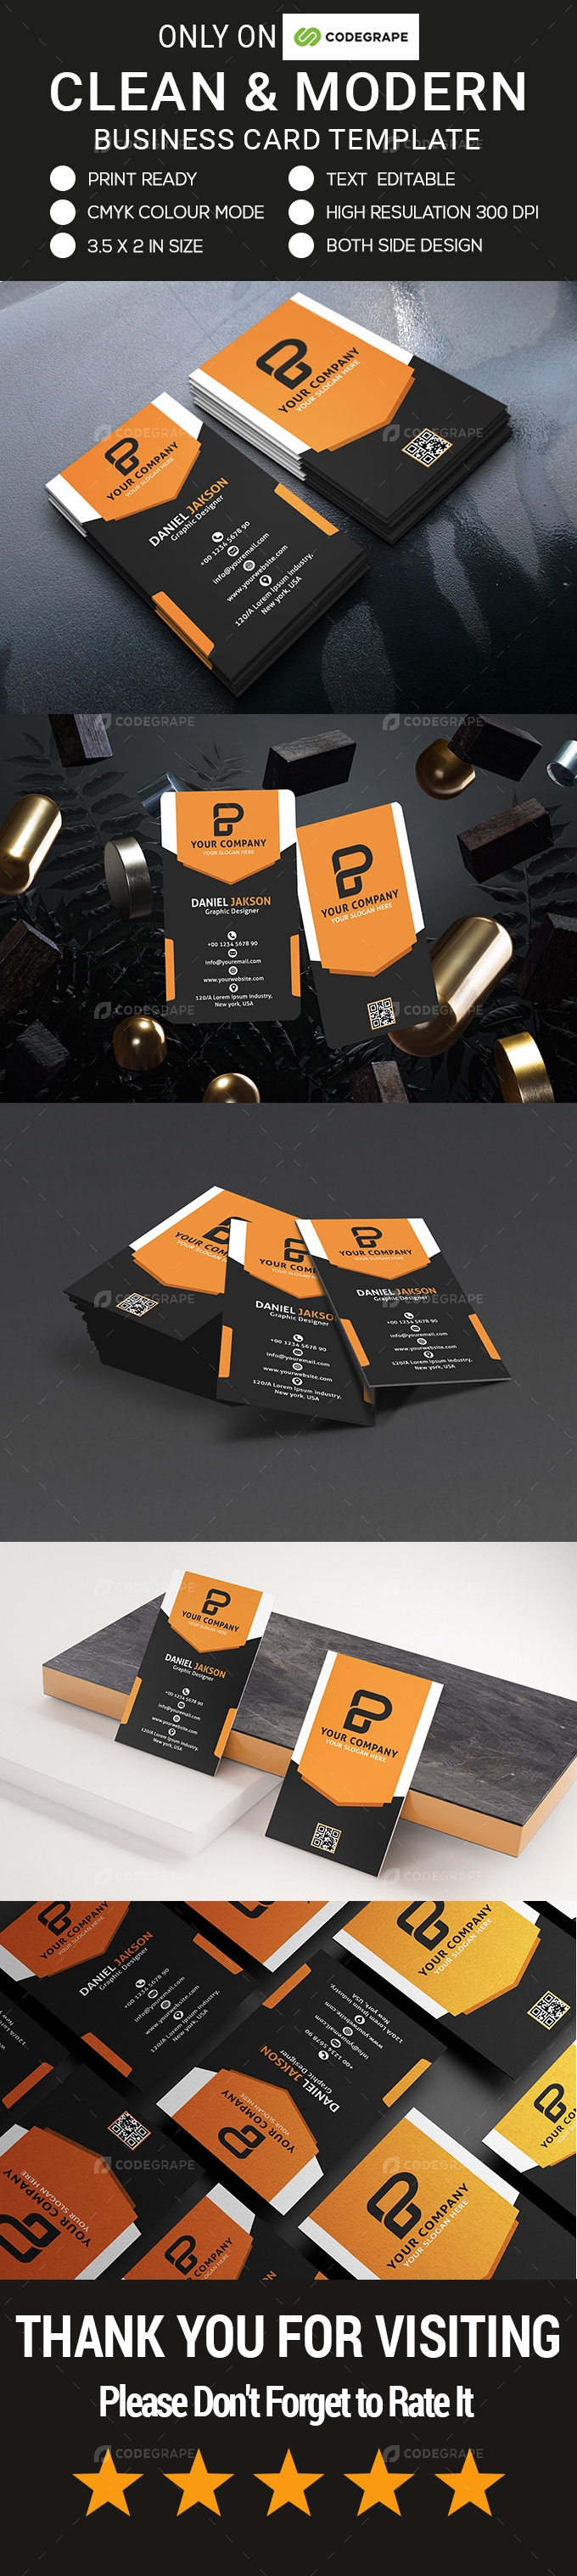 Clean & Modern Business Card Template